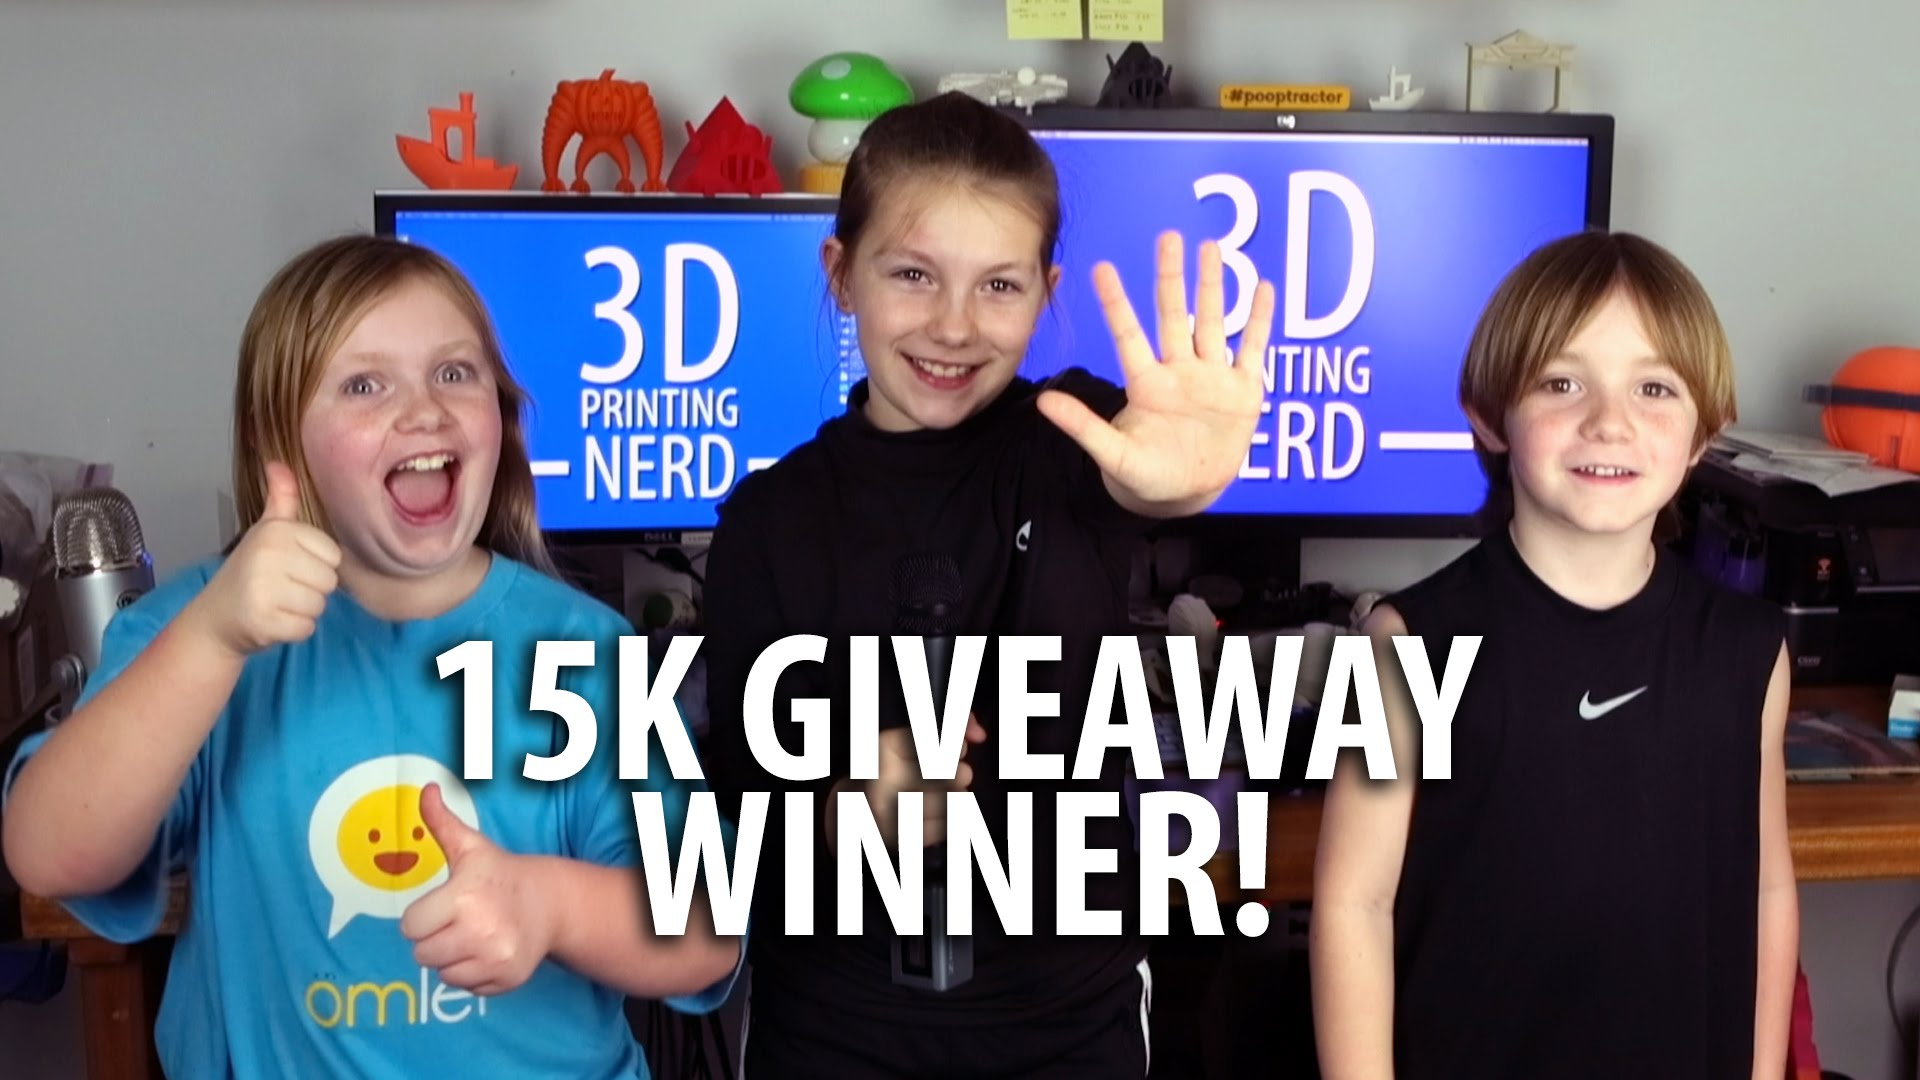 15K Giveaway Winner Announced!